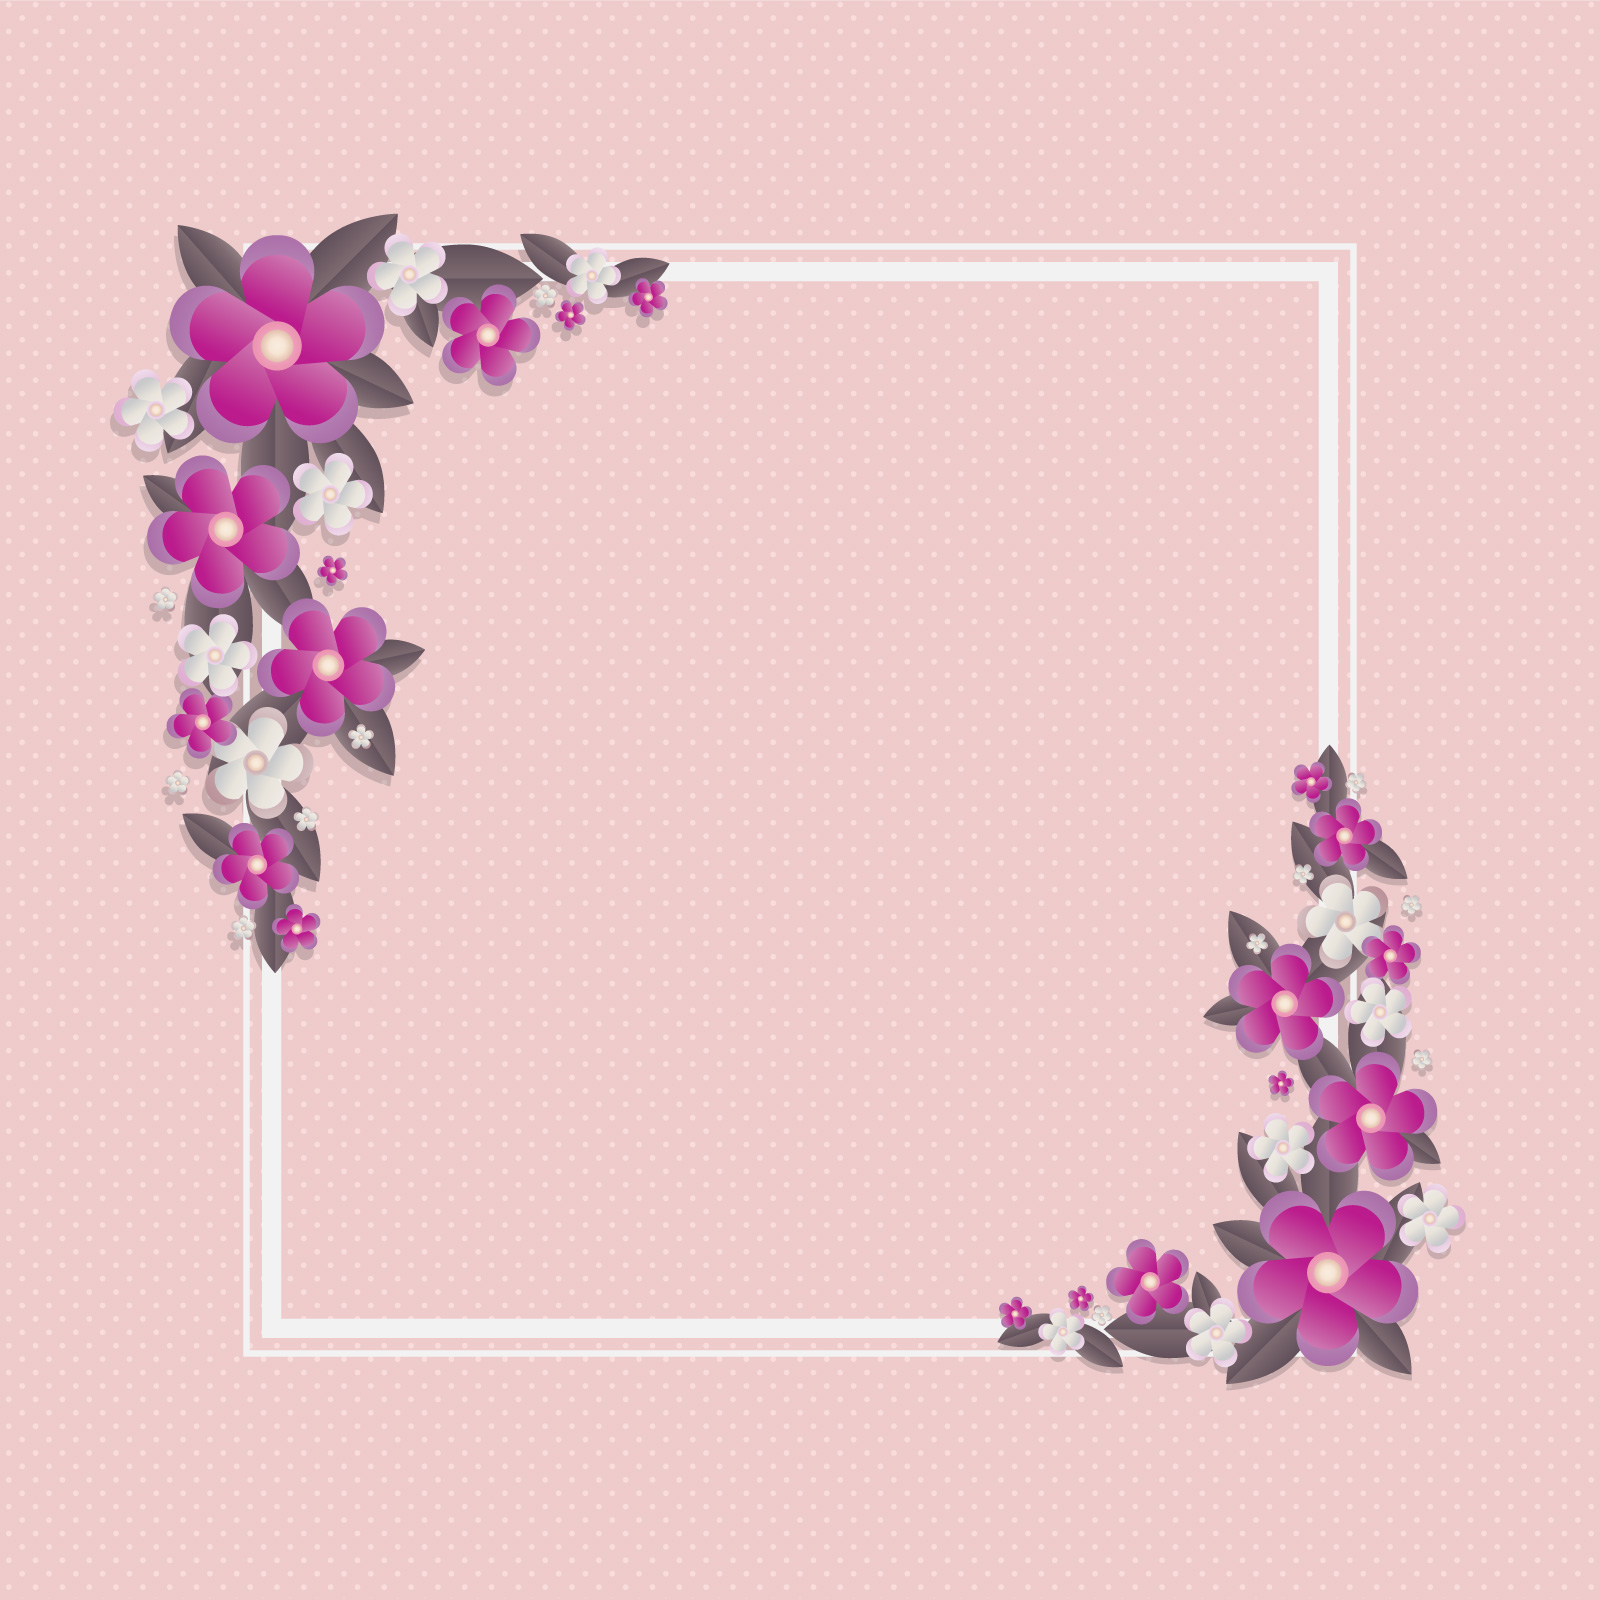 3d Floral Papercraft Frame Template Download Free Vector Art